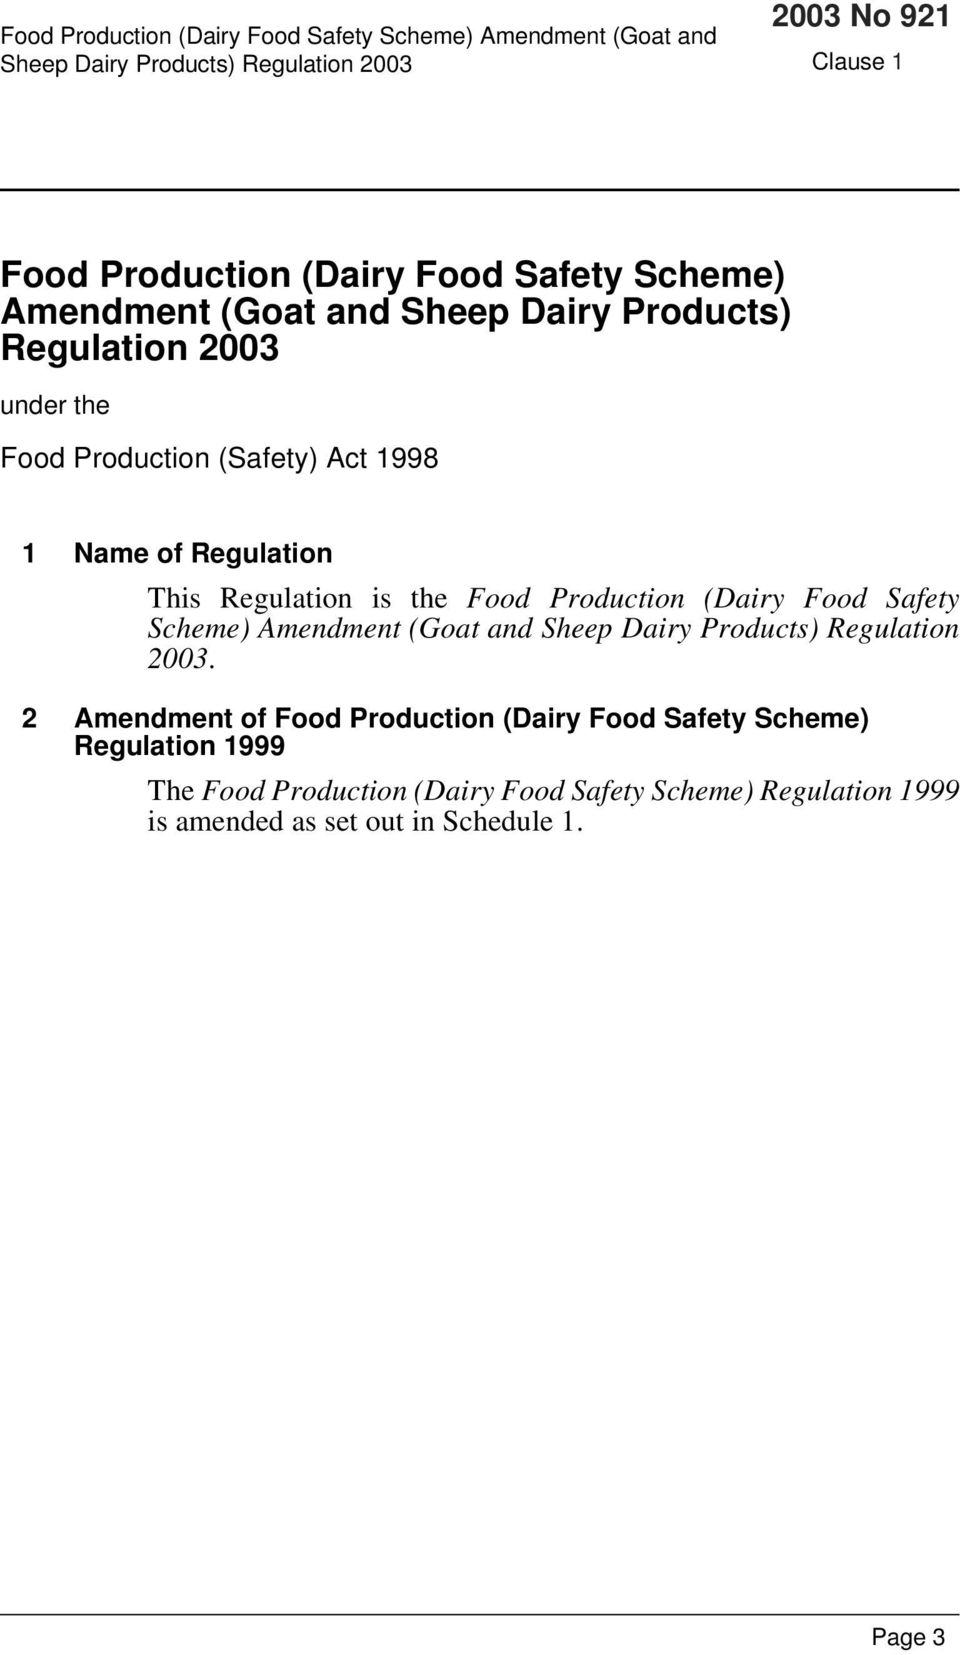 Production (Dairy Food Safety Scheme) Amendment (Goat and Sheep Dairy Products) Regulation 2003.